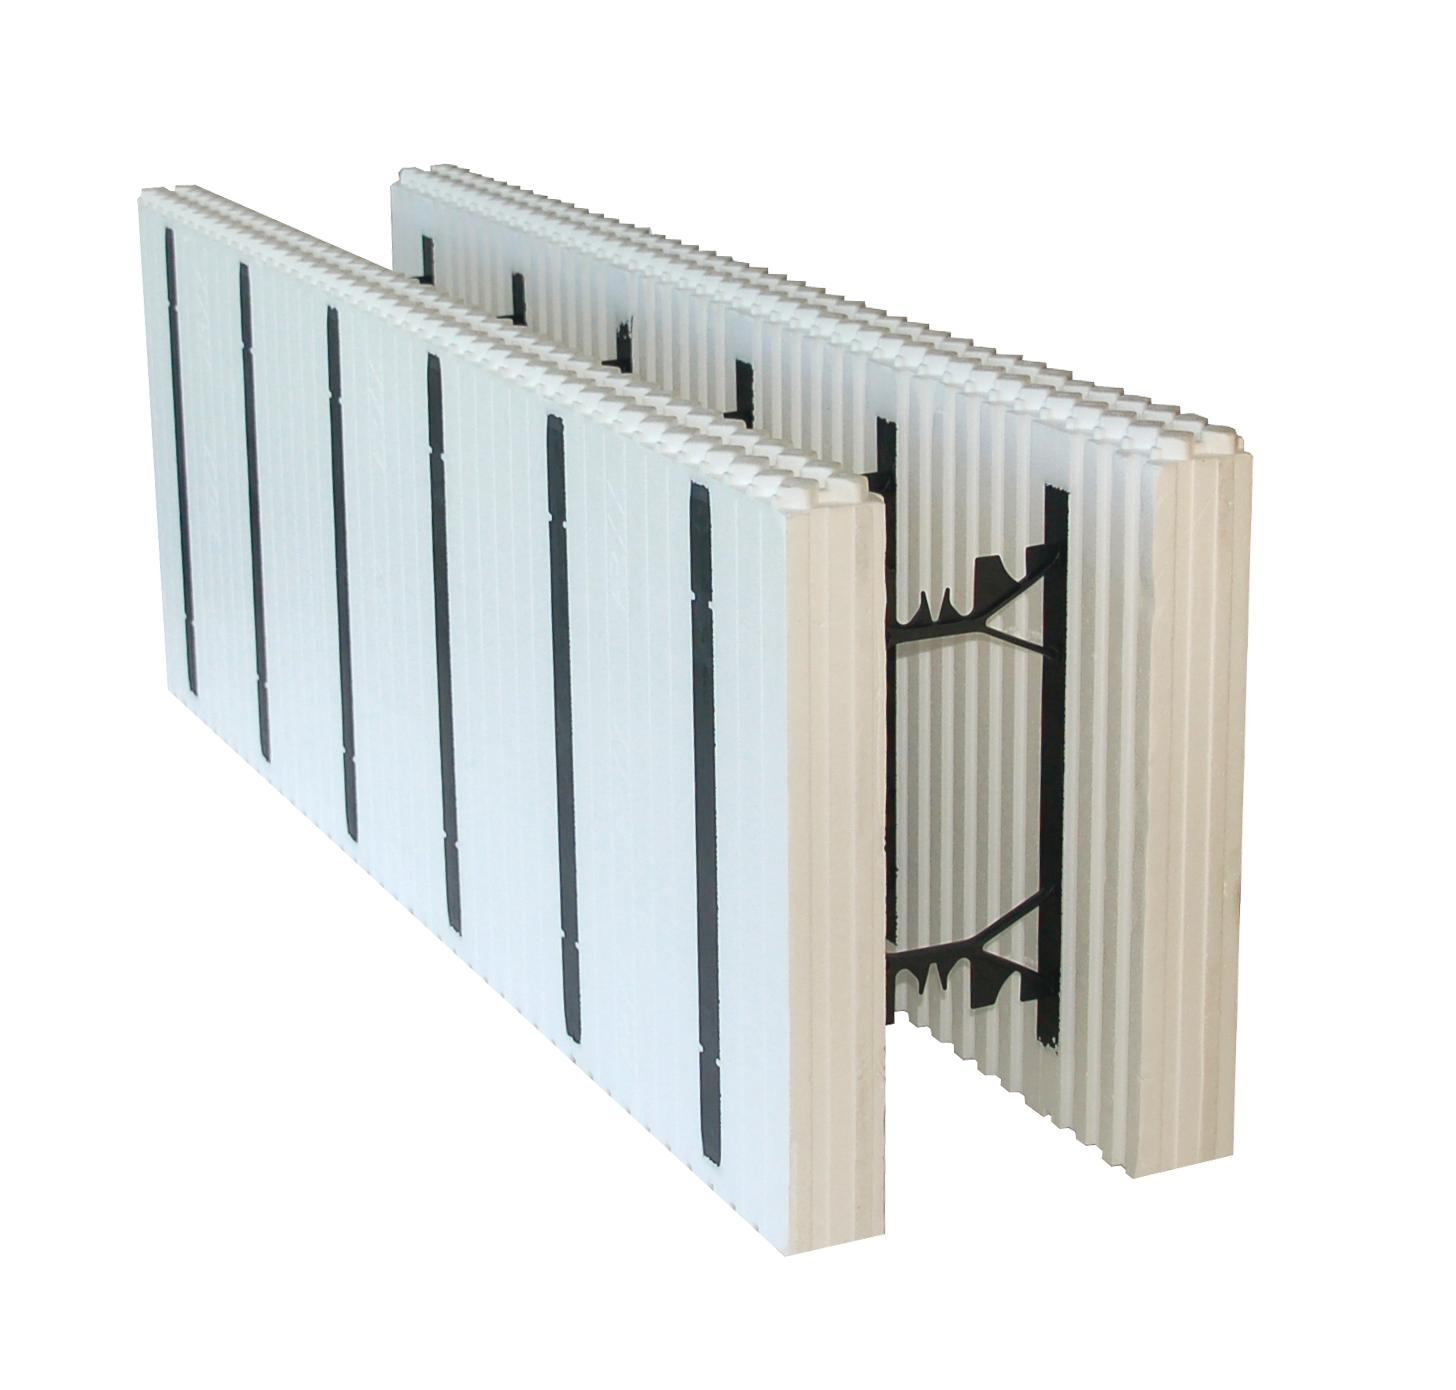 Preassmbled interlocking blocks from arxx ecobuilding for Icf foam block